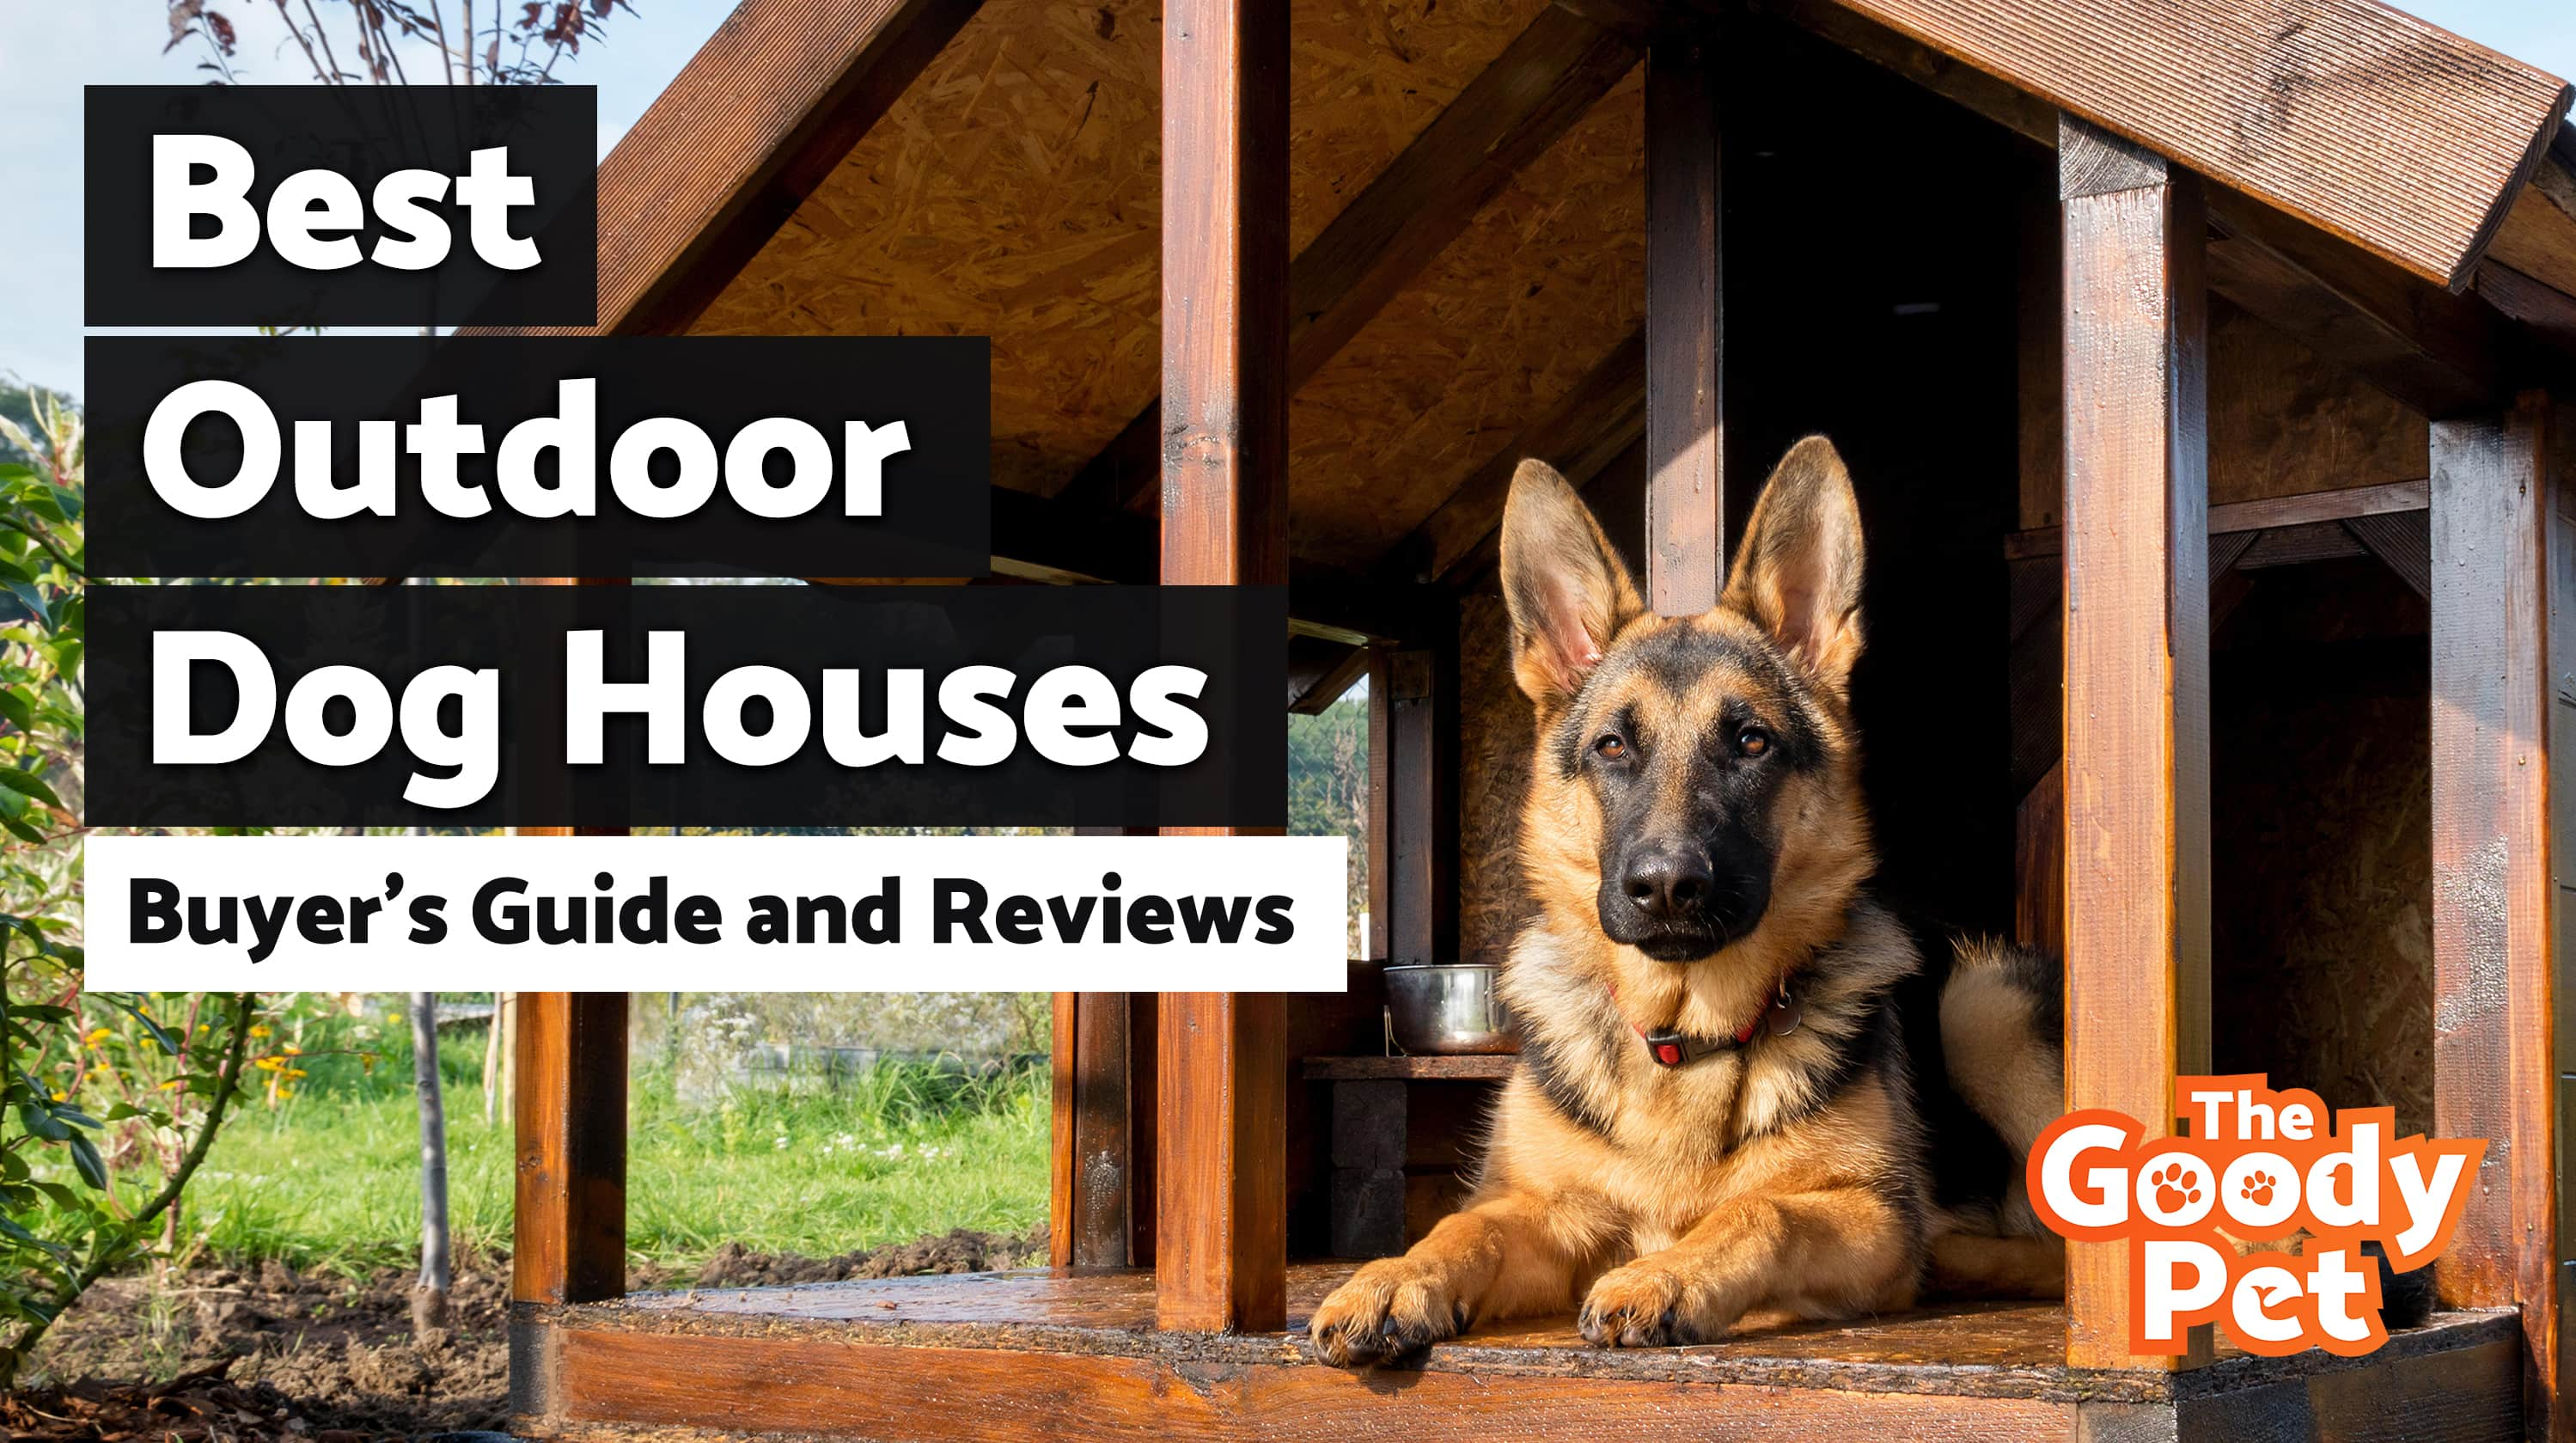 Best Outdoor Dog Houses For Your Furry Friend – Our 2019 Reviews & Top Picks